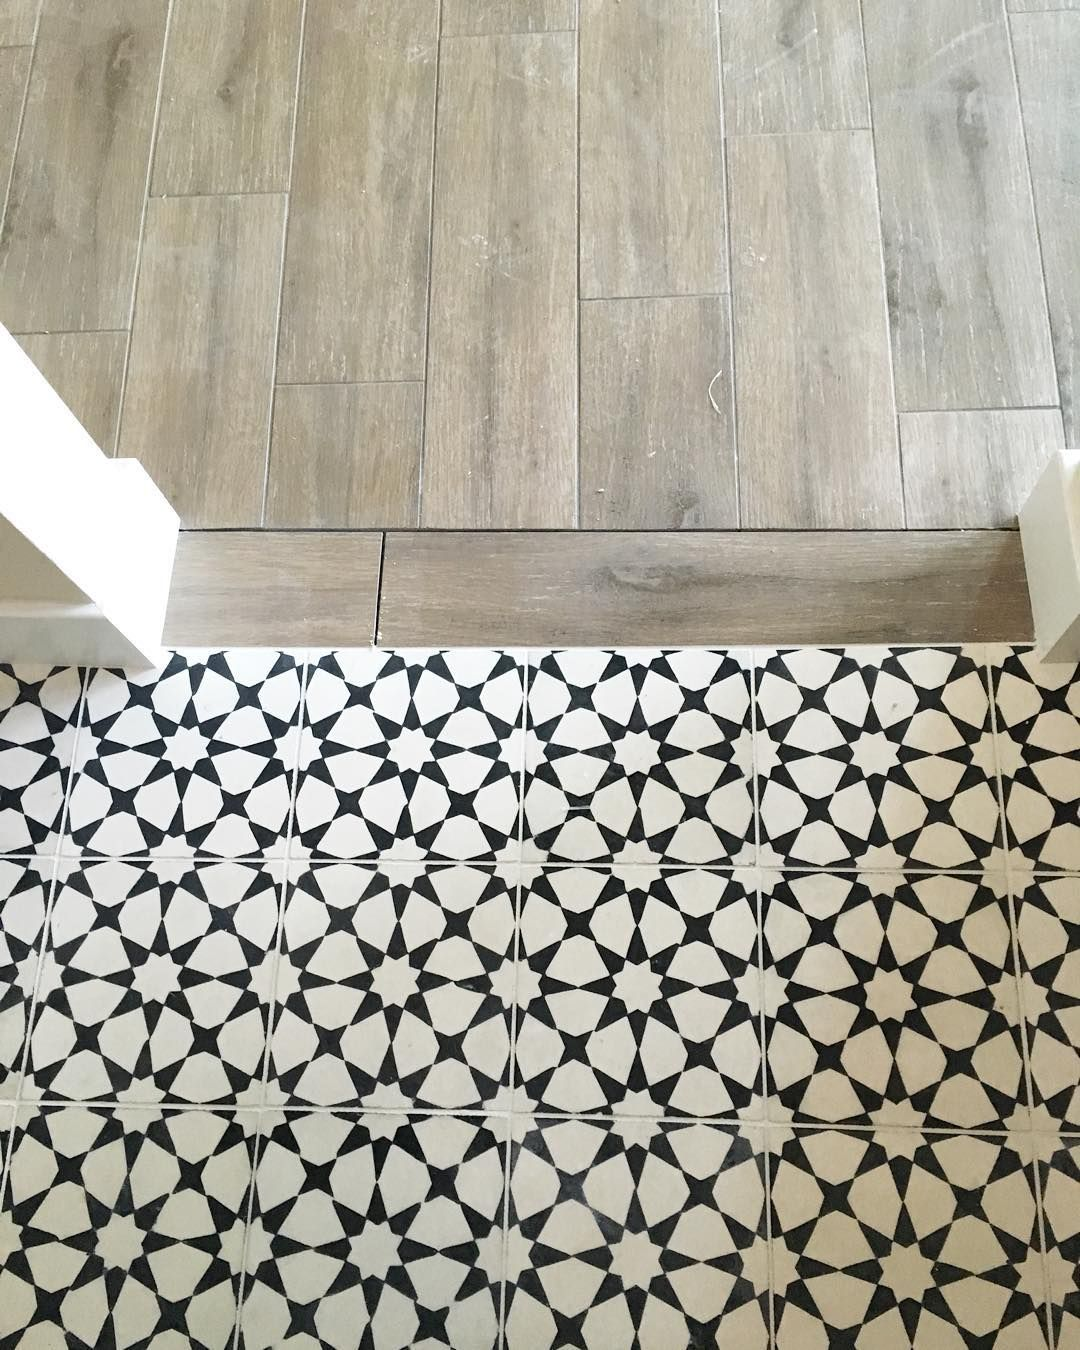 Vanessa matsalla wood to cement tile transition for White tile flooring ideas